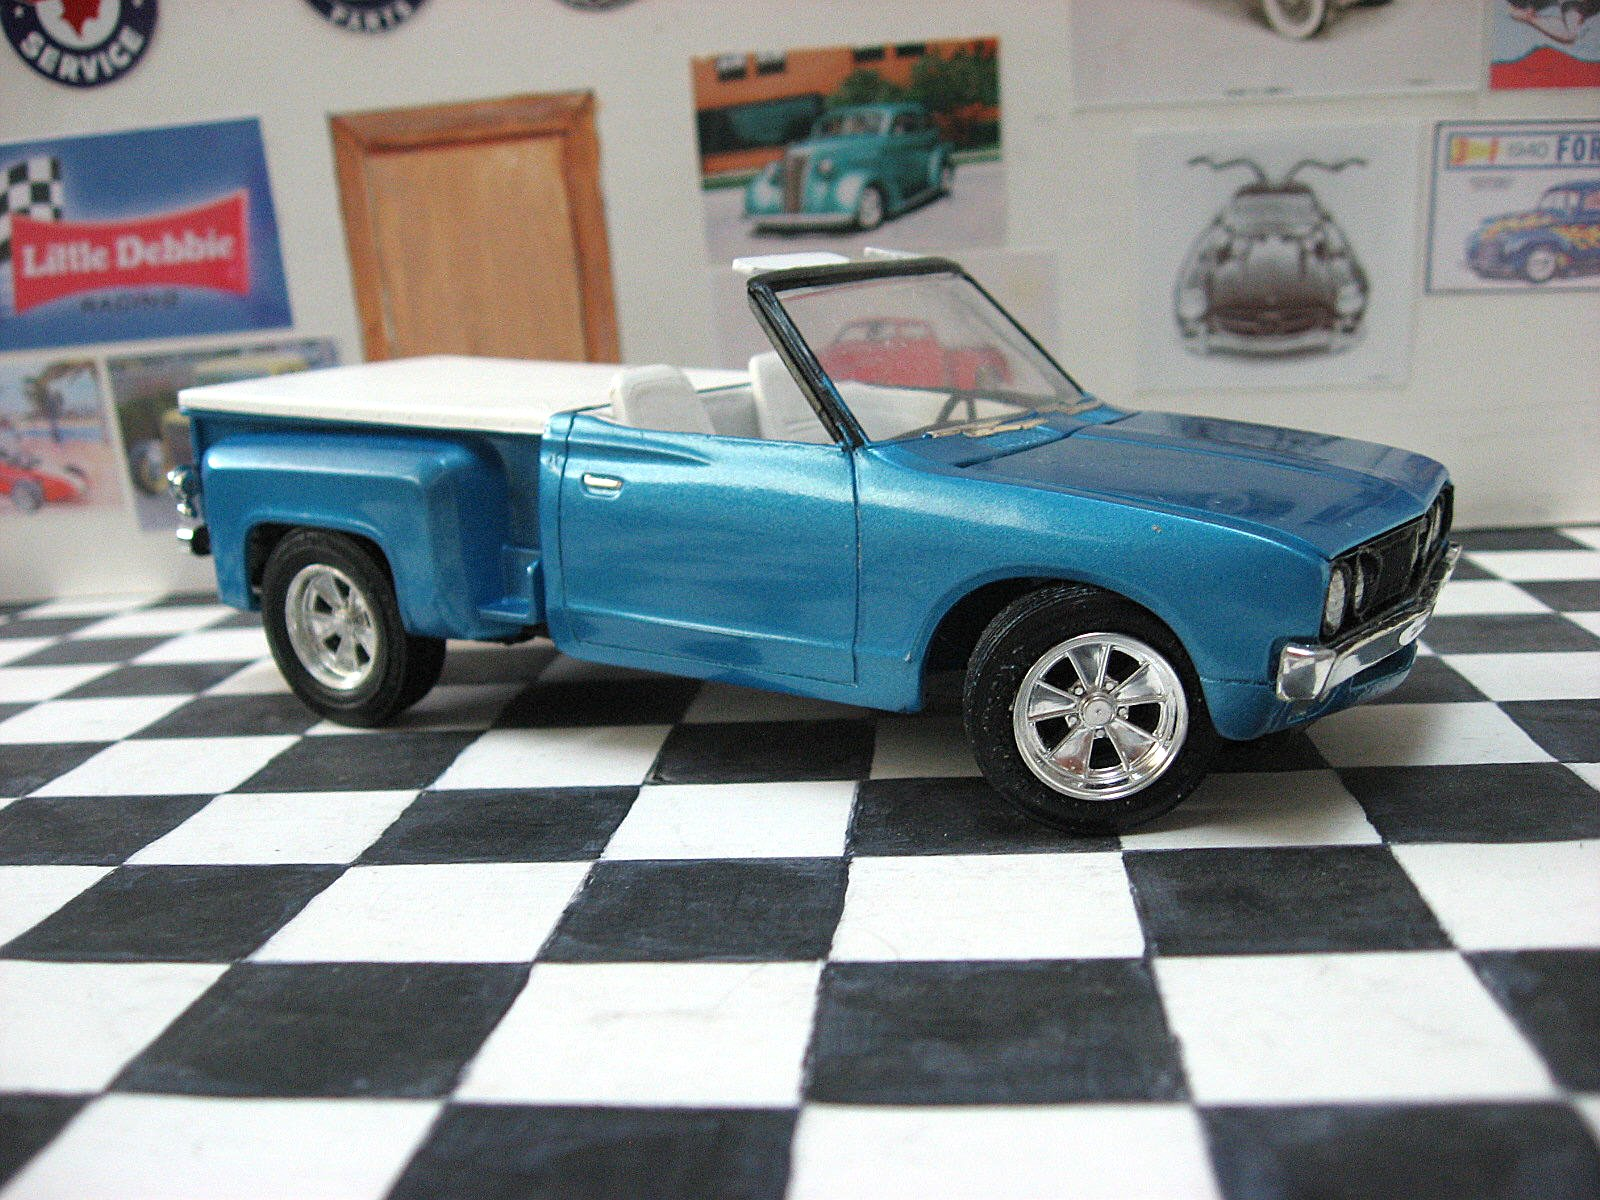 mpc 1975 datsun pickup page 2 truck kit news reviews model cars magazine forum. Black Bedroom Furniture Sets. Home Design Ideas